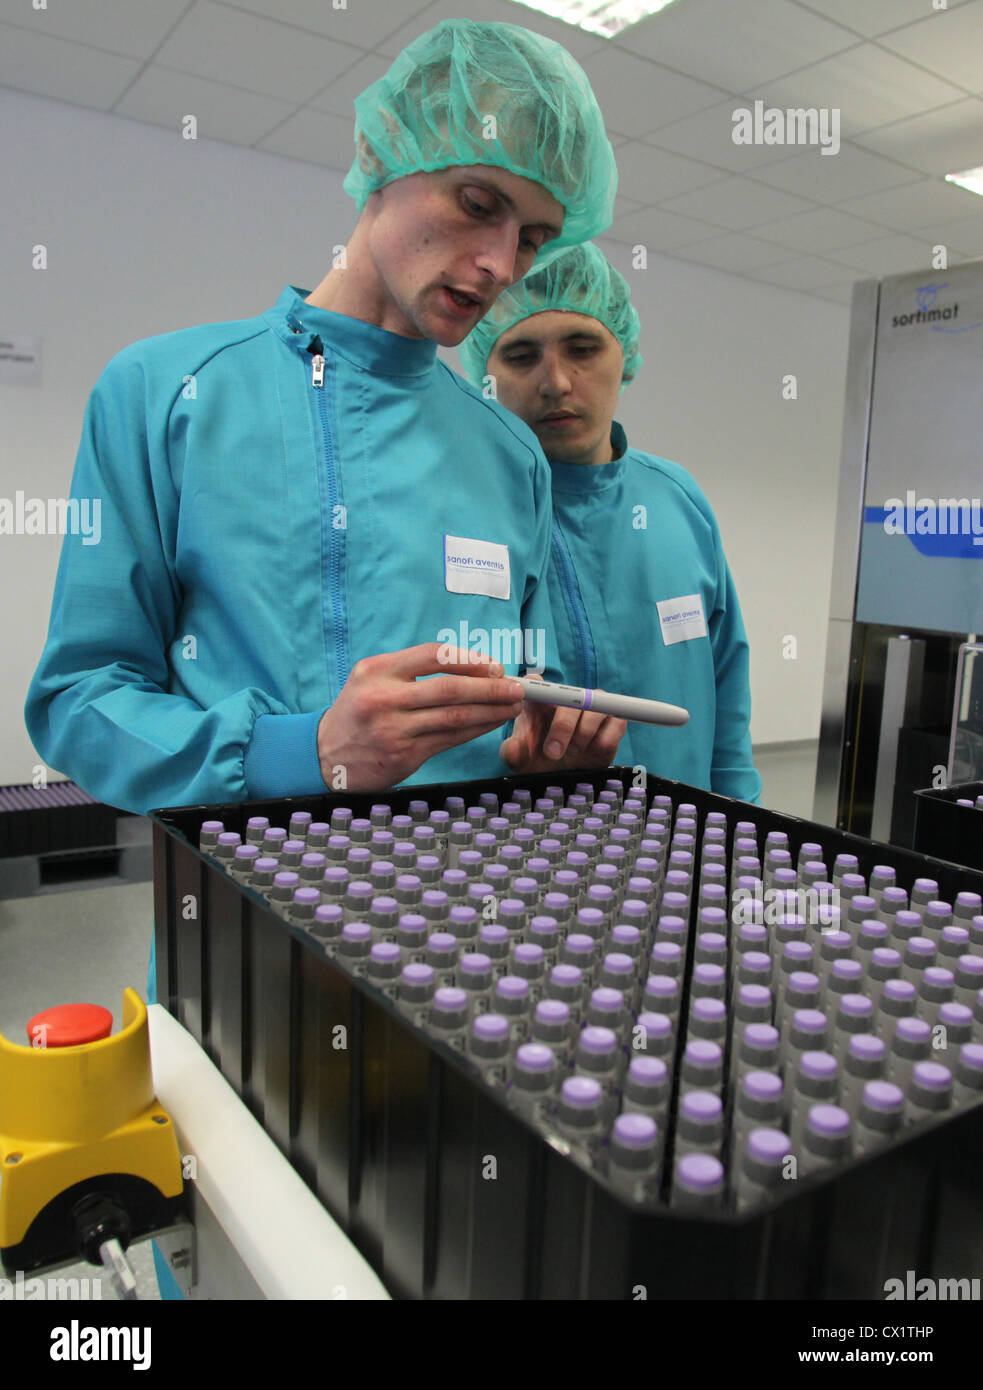 ITAR-TASS: ORYOL REGION, RUSSIA. MAY 24, 2011. Pharmaceutical workers examine insulin glargine pens (brand name - Stock Image